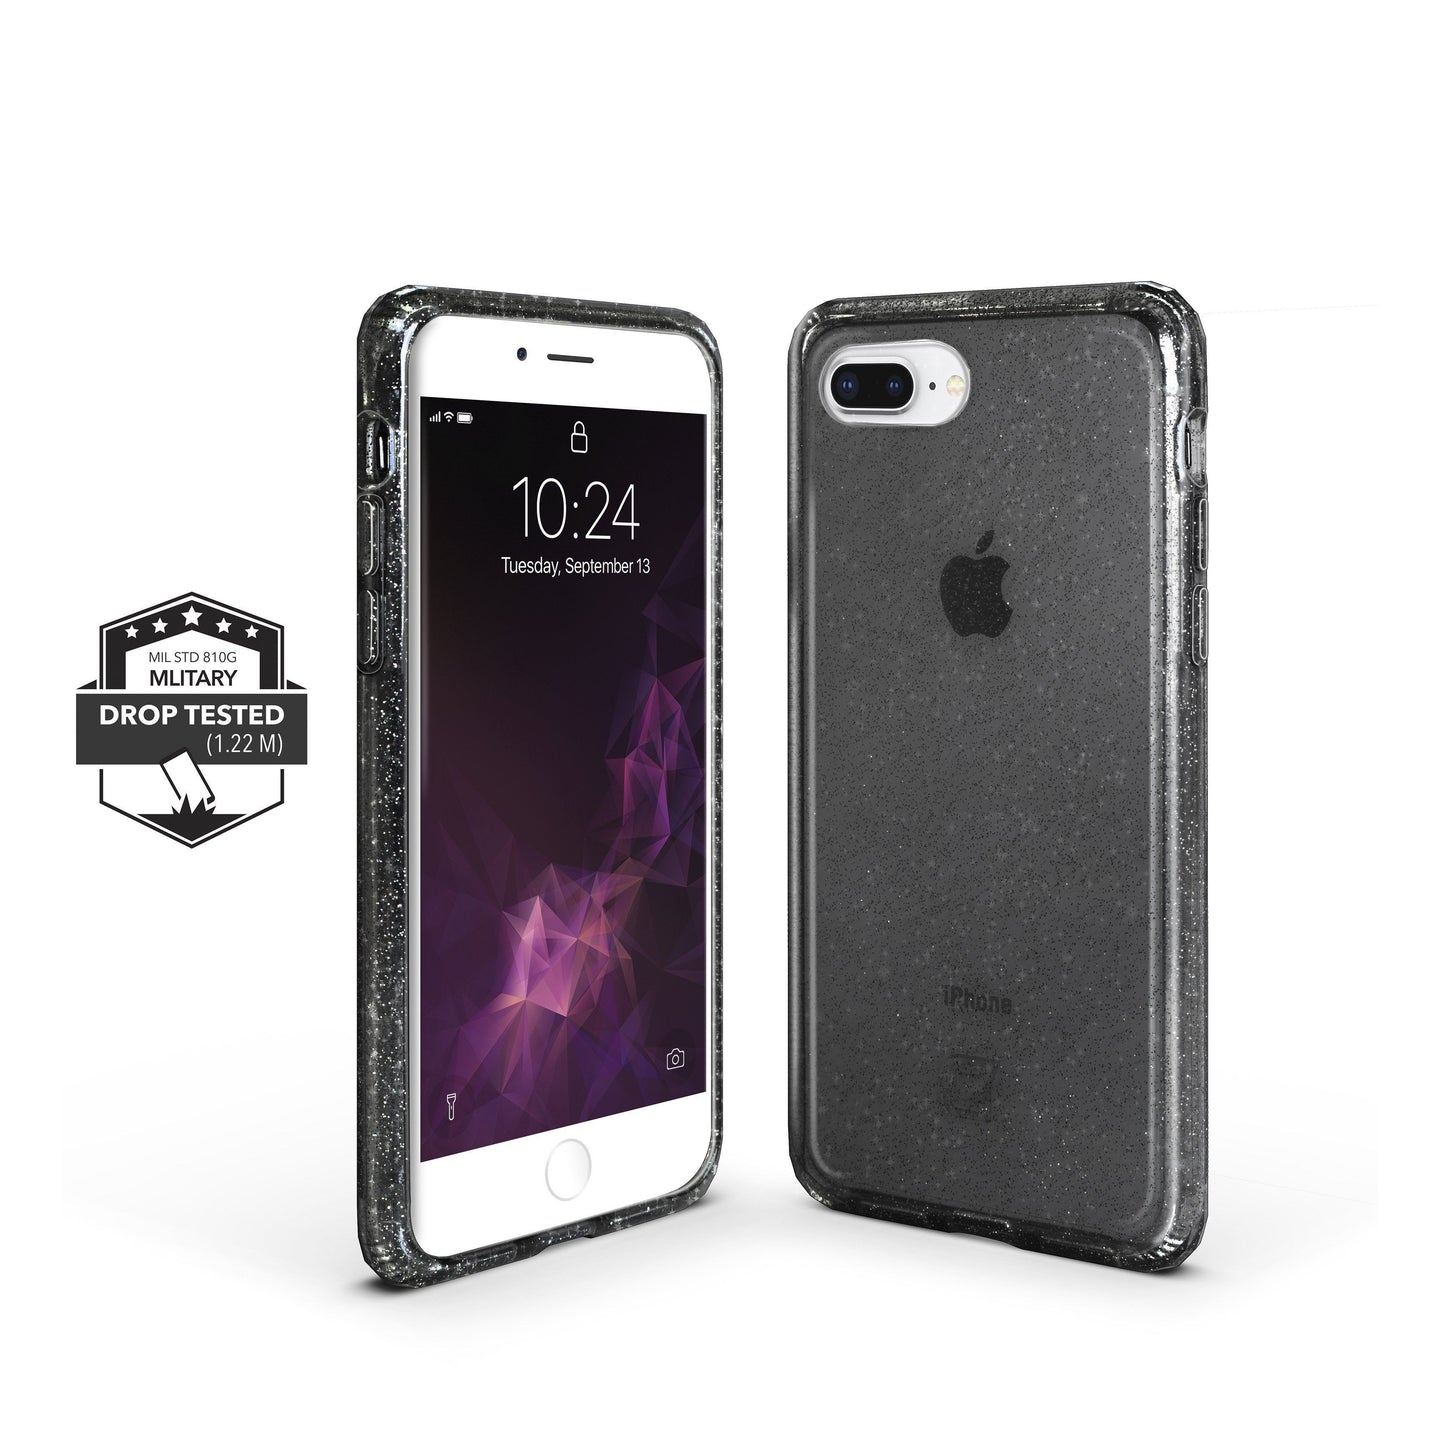 iPhone SE Slim Clear Protective Case - Black Glam